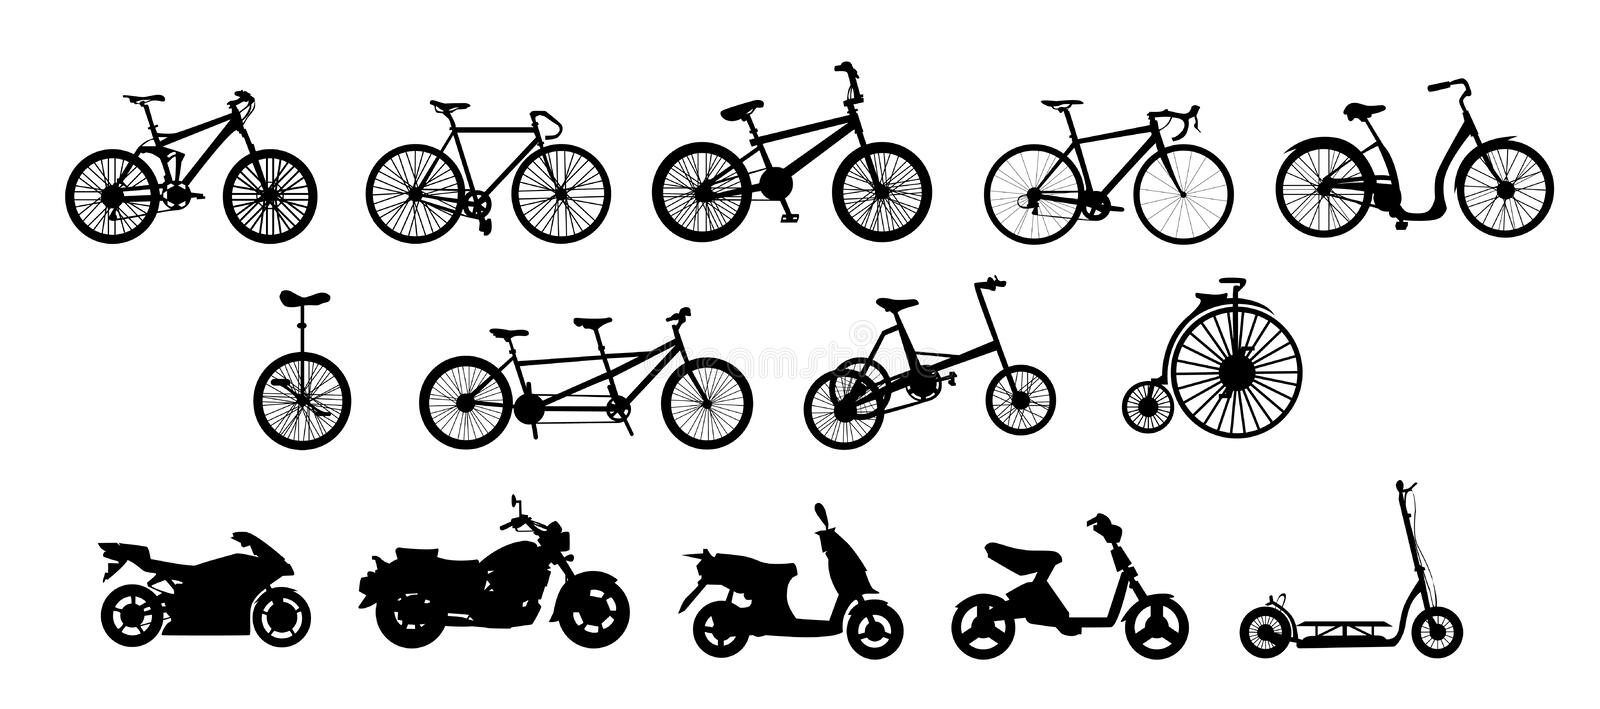 Bikes. Illustration of 14 different (motor)bikes: 1st row: mountain, track, BMX, racing and cruiser bicycles. 2nd row: unicycle, tandem, tricycle and vintage